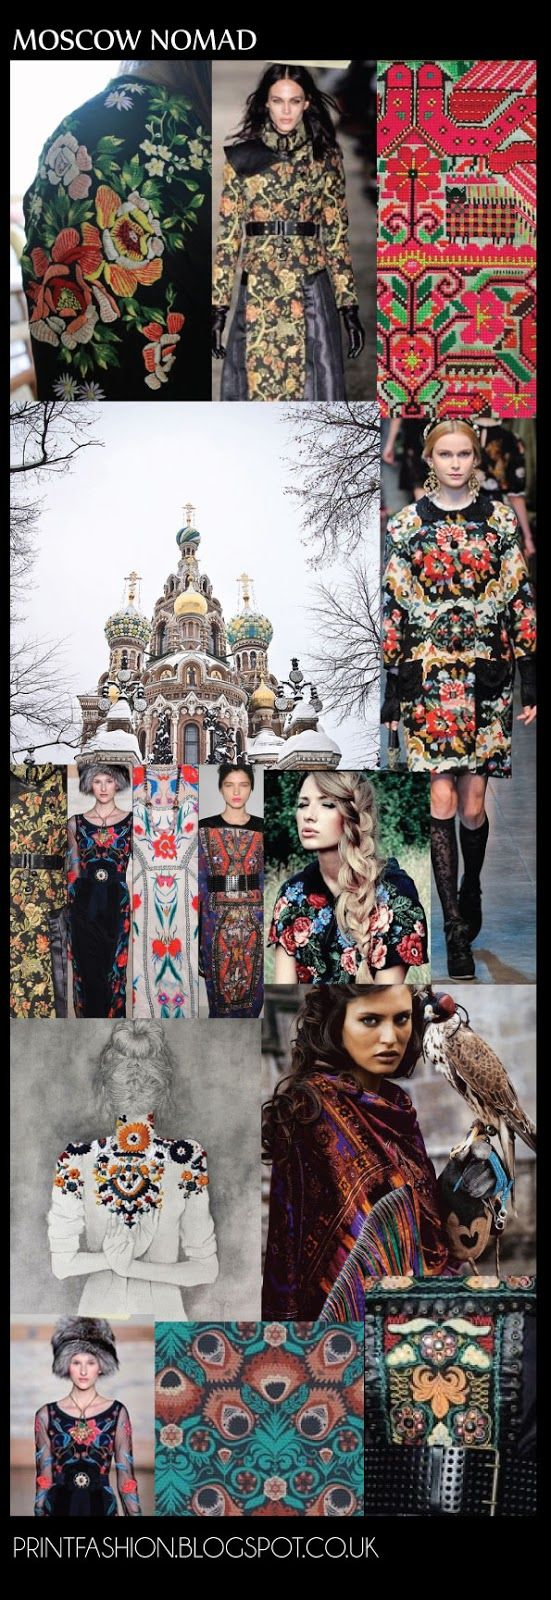 eastern europe fashion trend AW13-14: Trend Moscow Nomad is very much a folkloric inspired look. Floral Embroidery is plays a key role in this trend with lots of bright colours especially gold and rich turquoise hues.